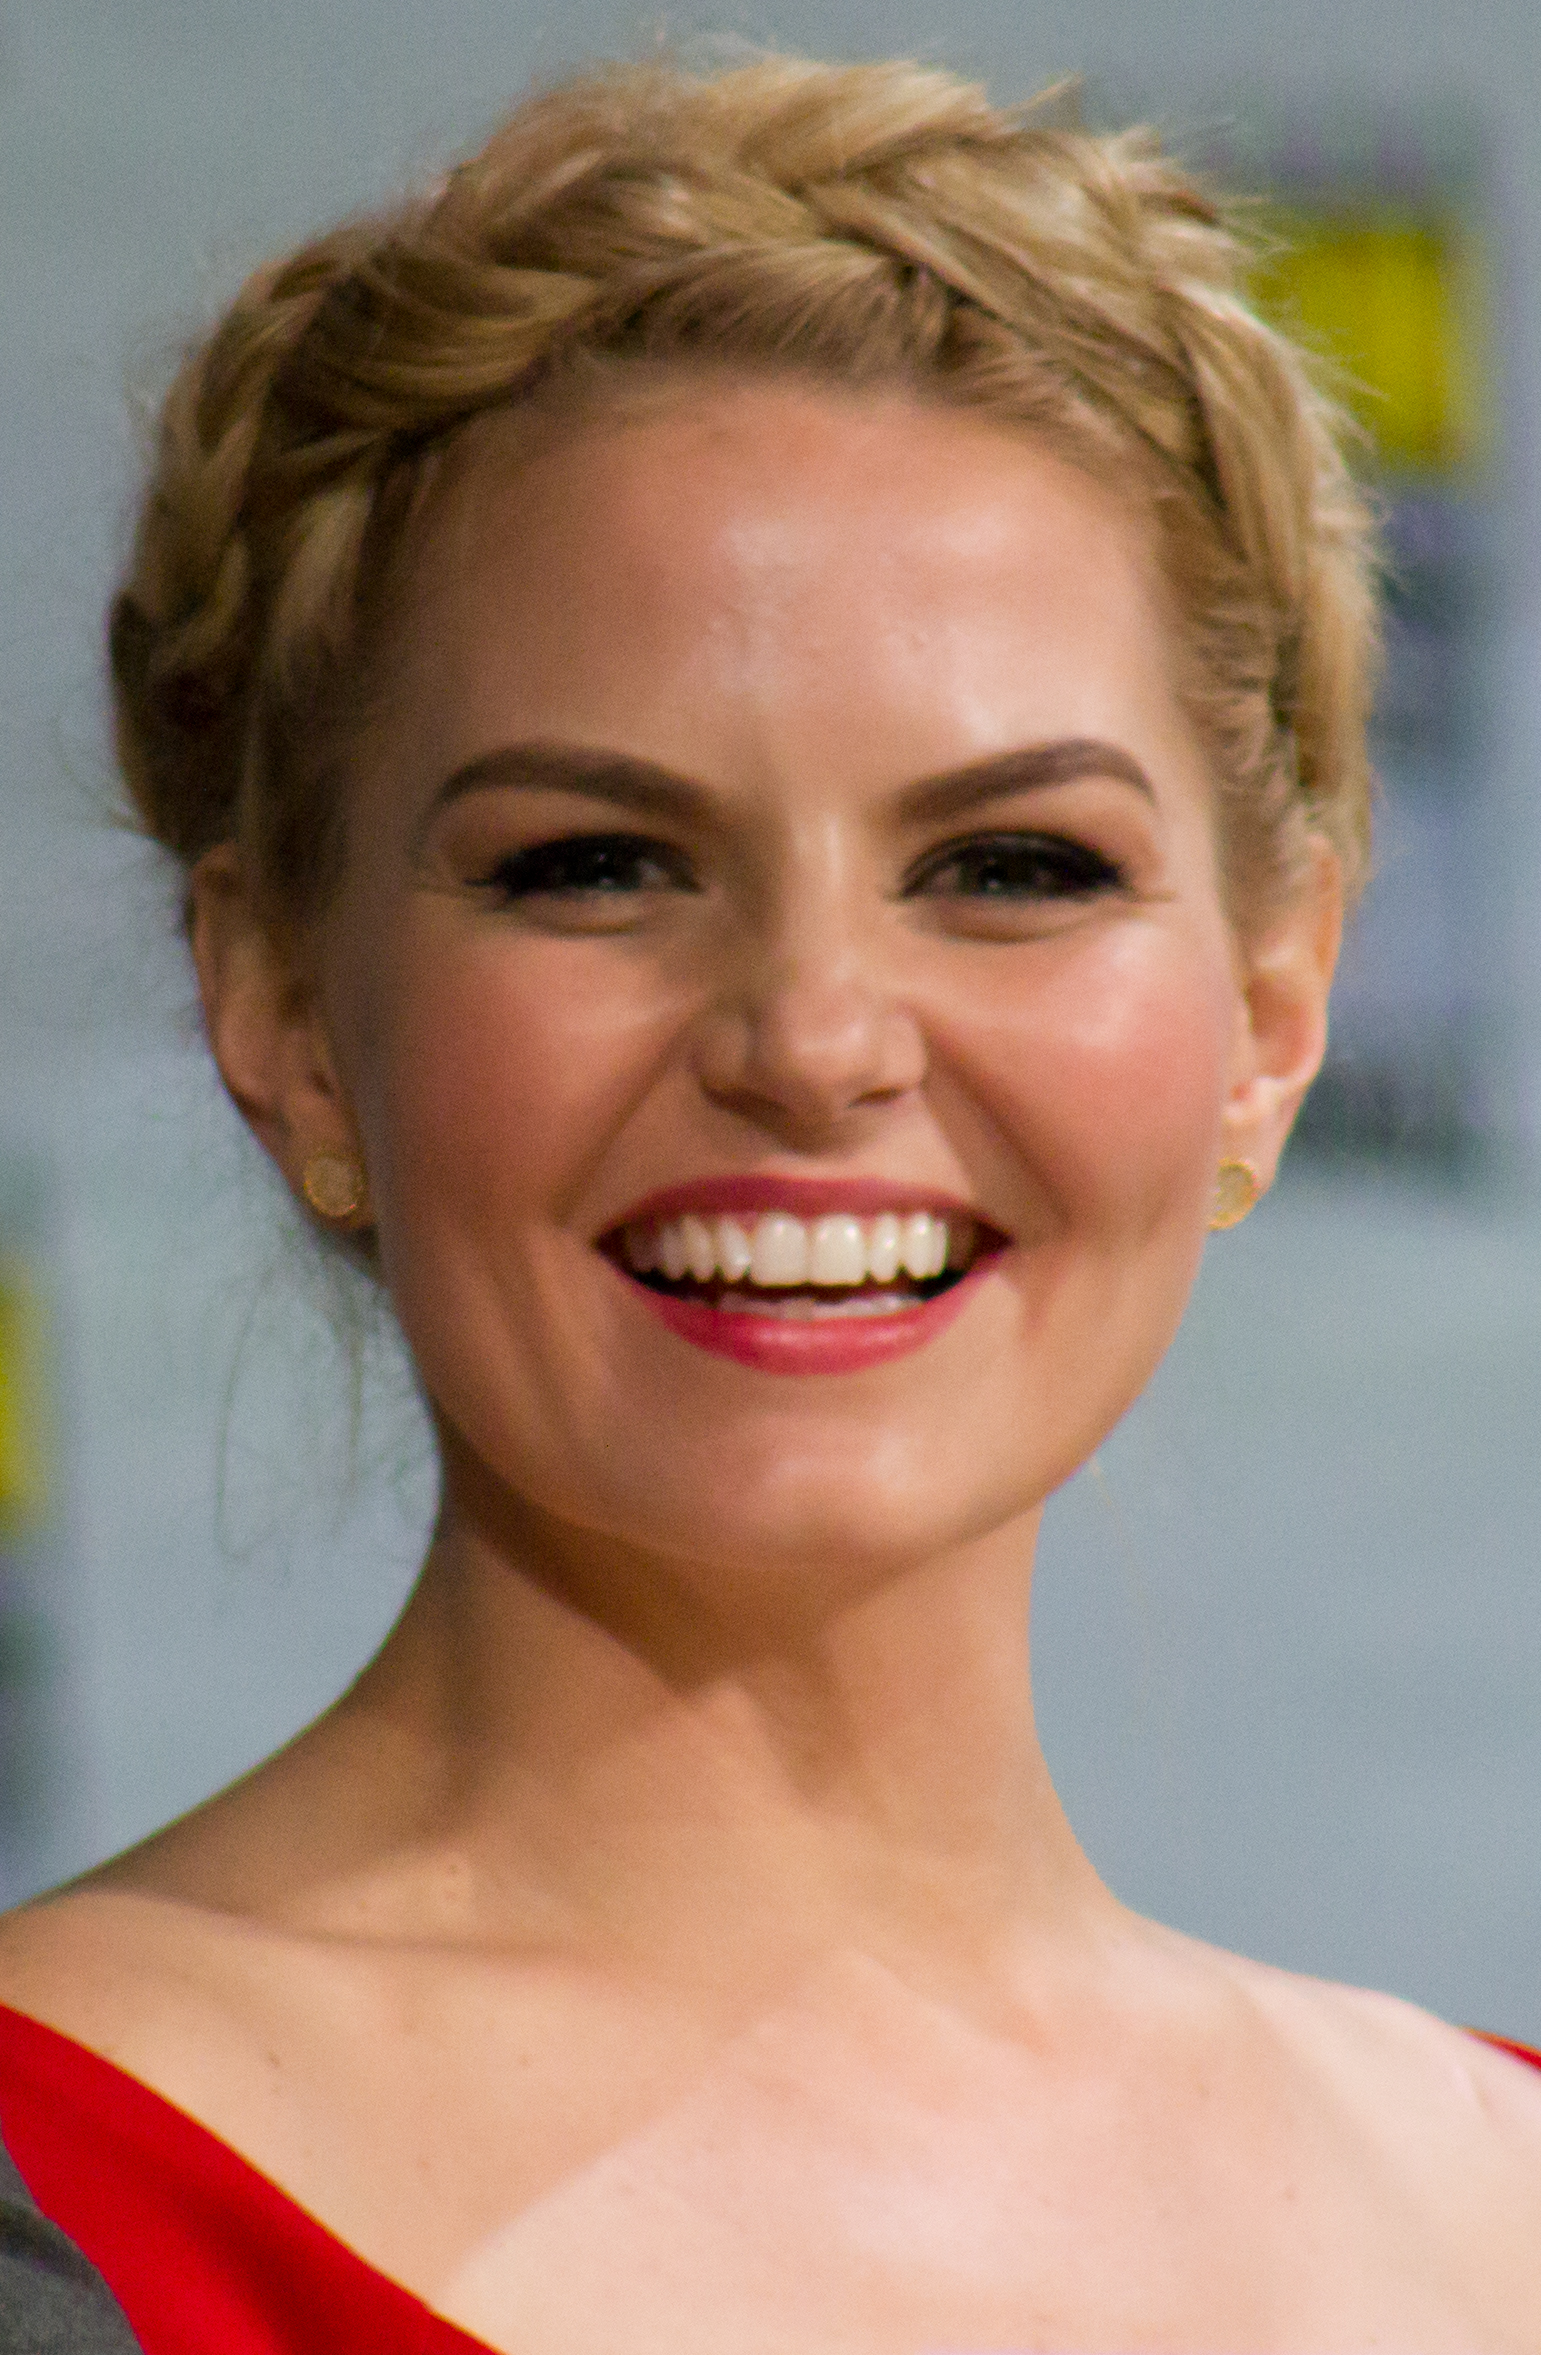 Jennifer Morrison nudes (53 photos), Topless, Paparazzi, Twitter, braless 2015